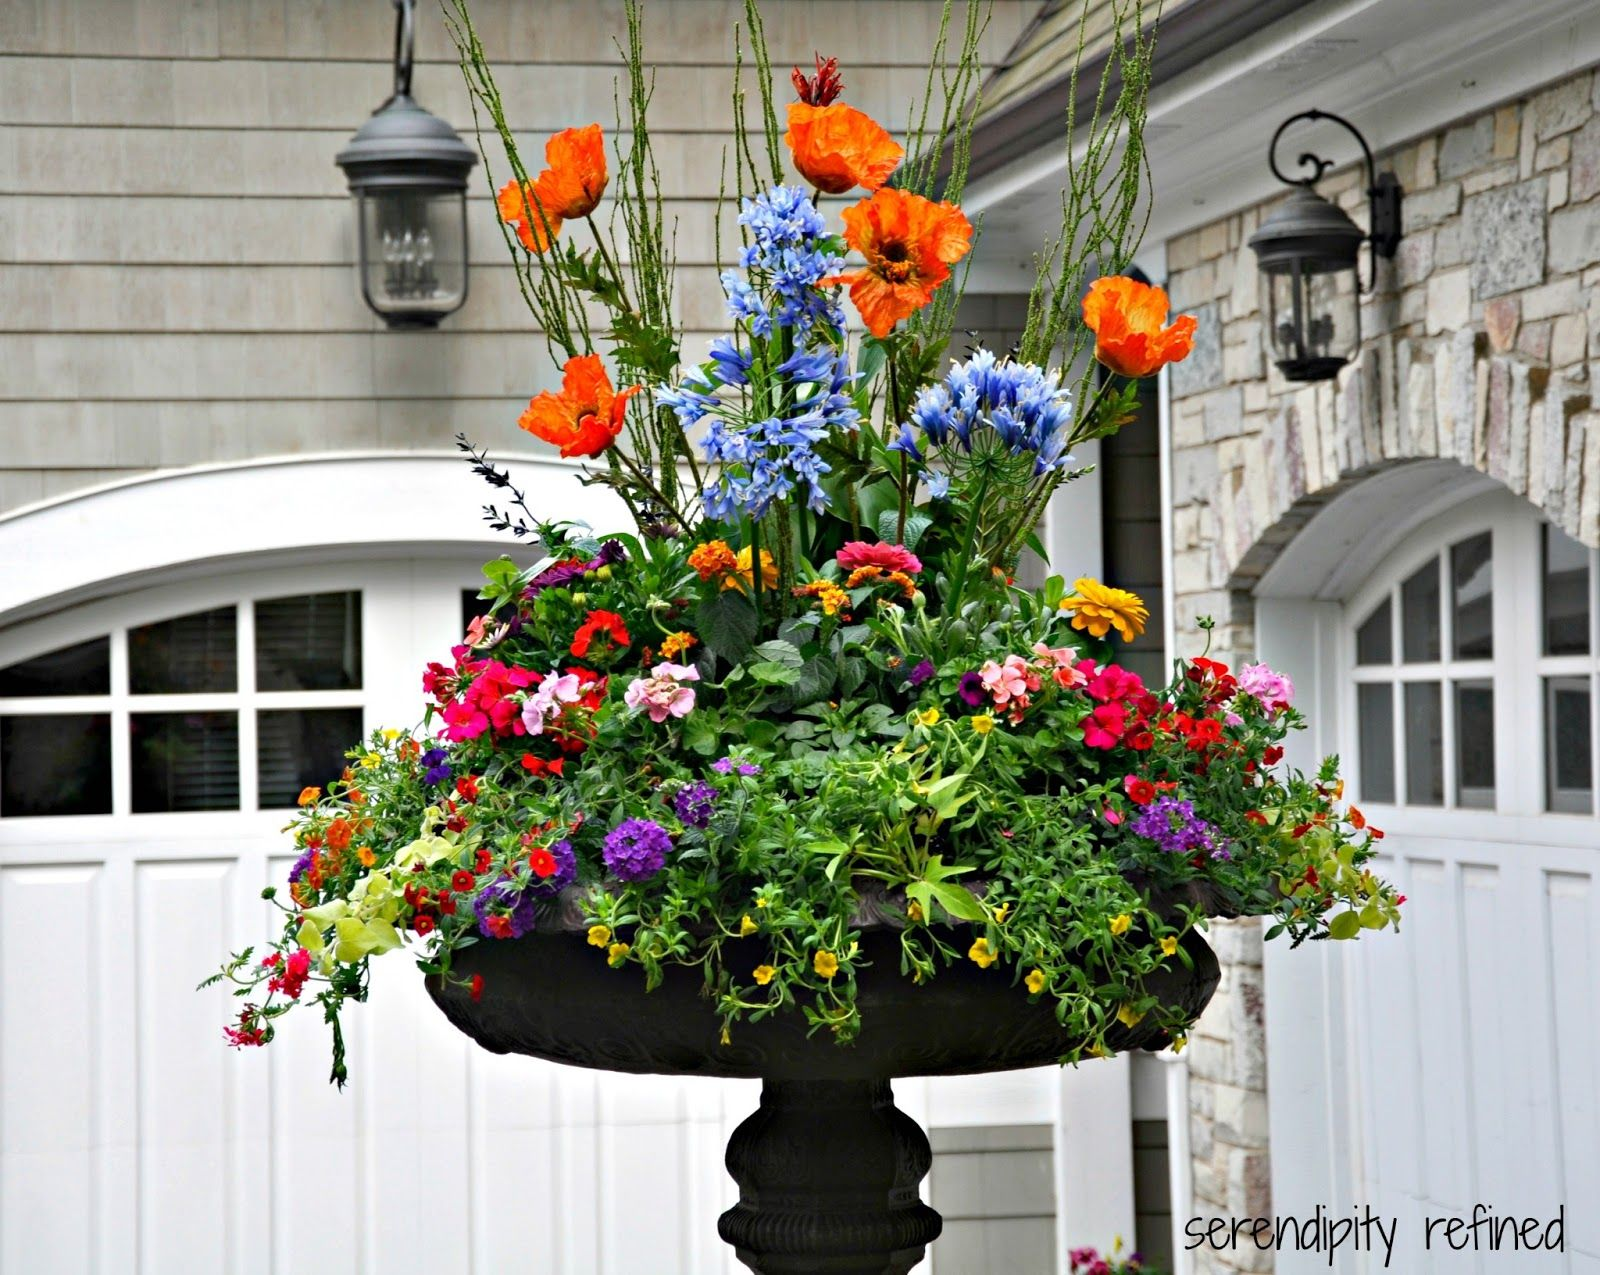 Spring Urn Planter Flower Arrangement With Forsythia Tulips Daffodils And  White Bird Houses. Description From